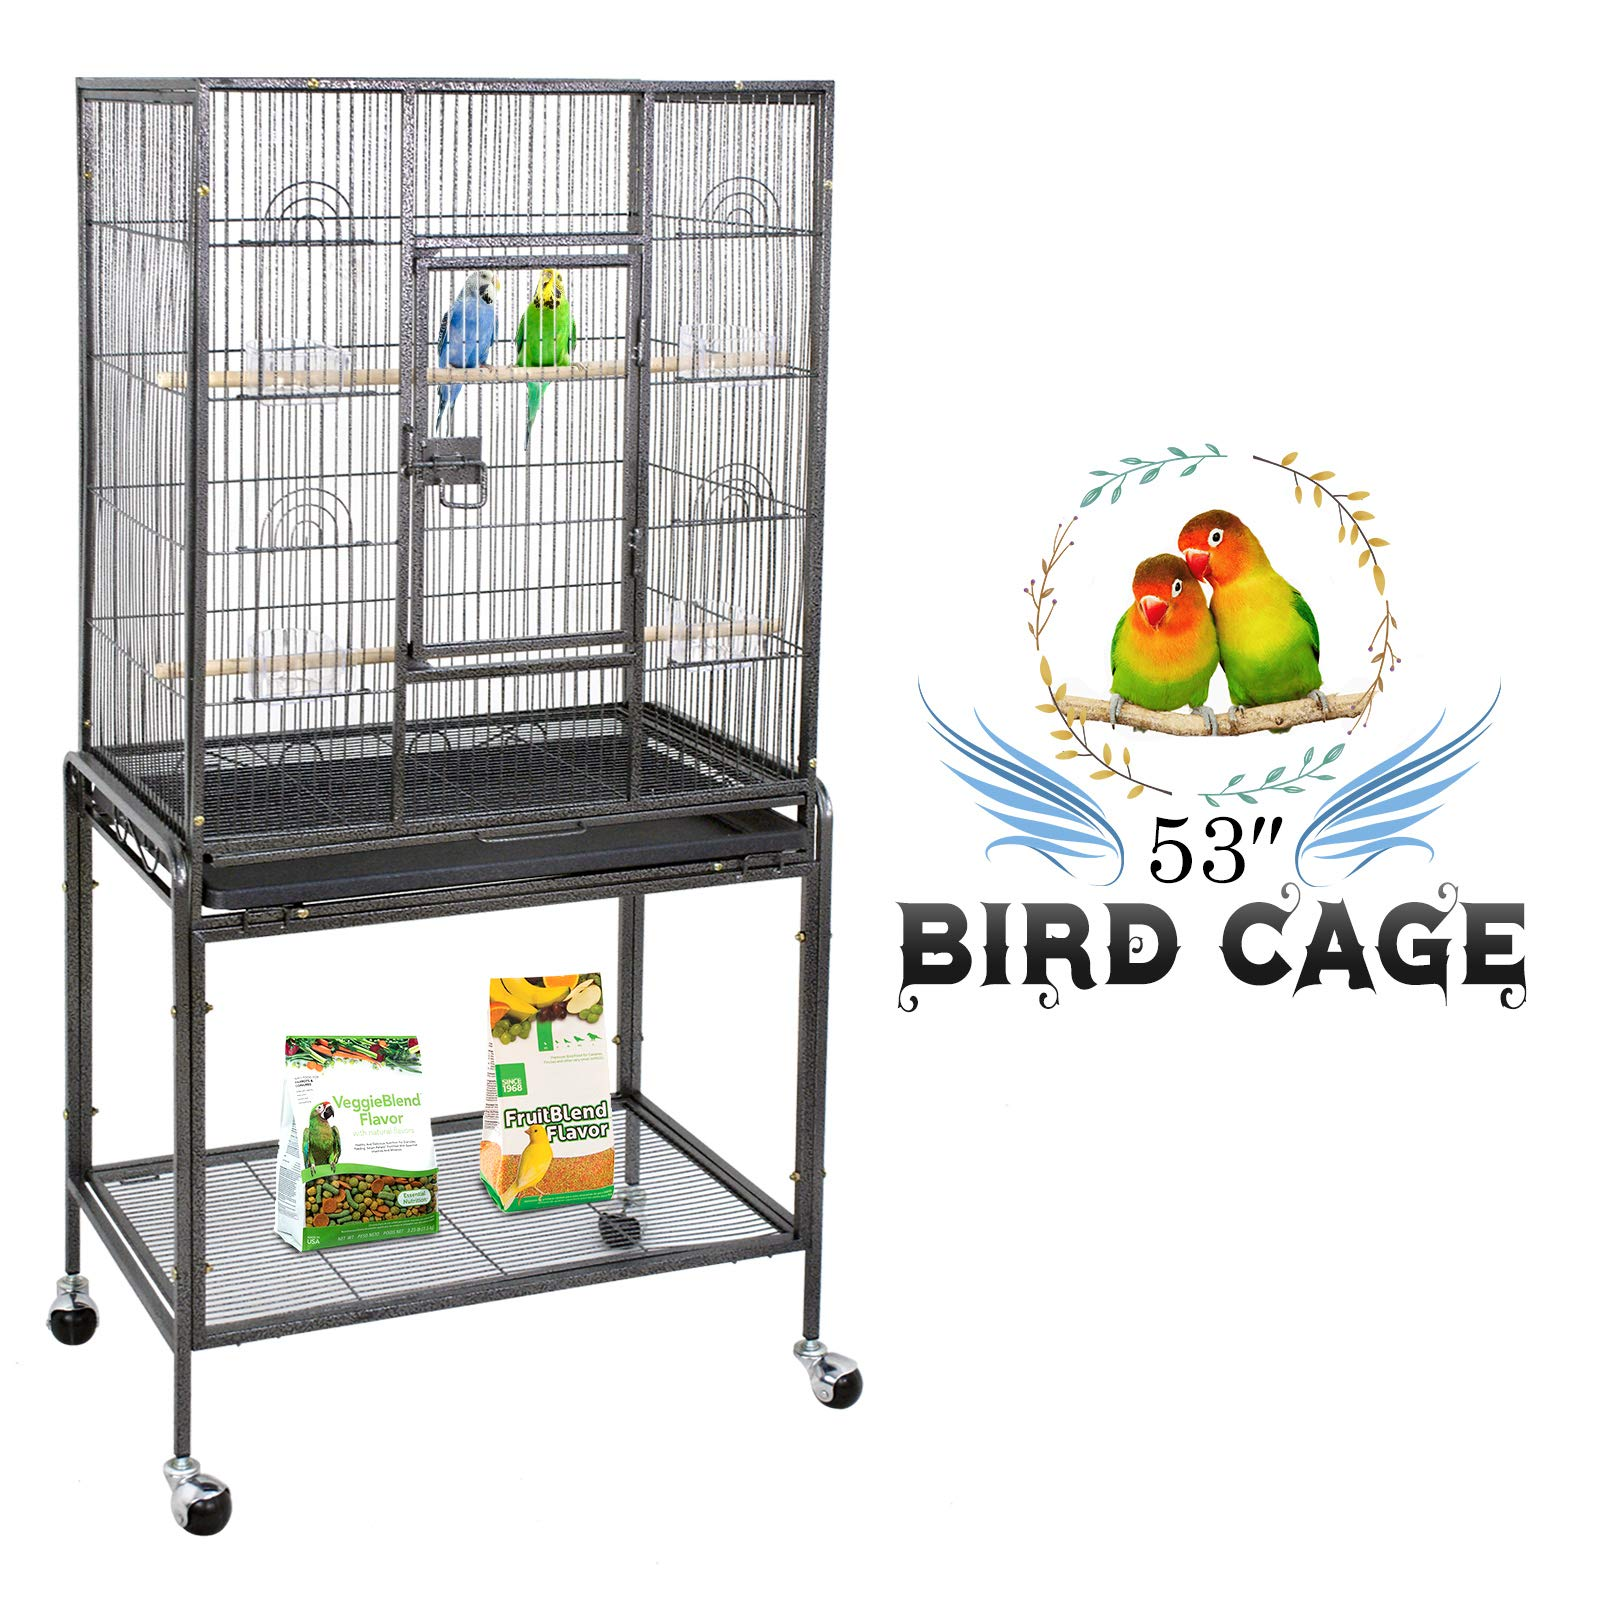 ZENY Bird Cage with Stand Wrought Iron Construction 53-Inch Pet Bird Cage Play Top Parrot Cockatiel Cockatoo Parakeet…